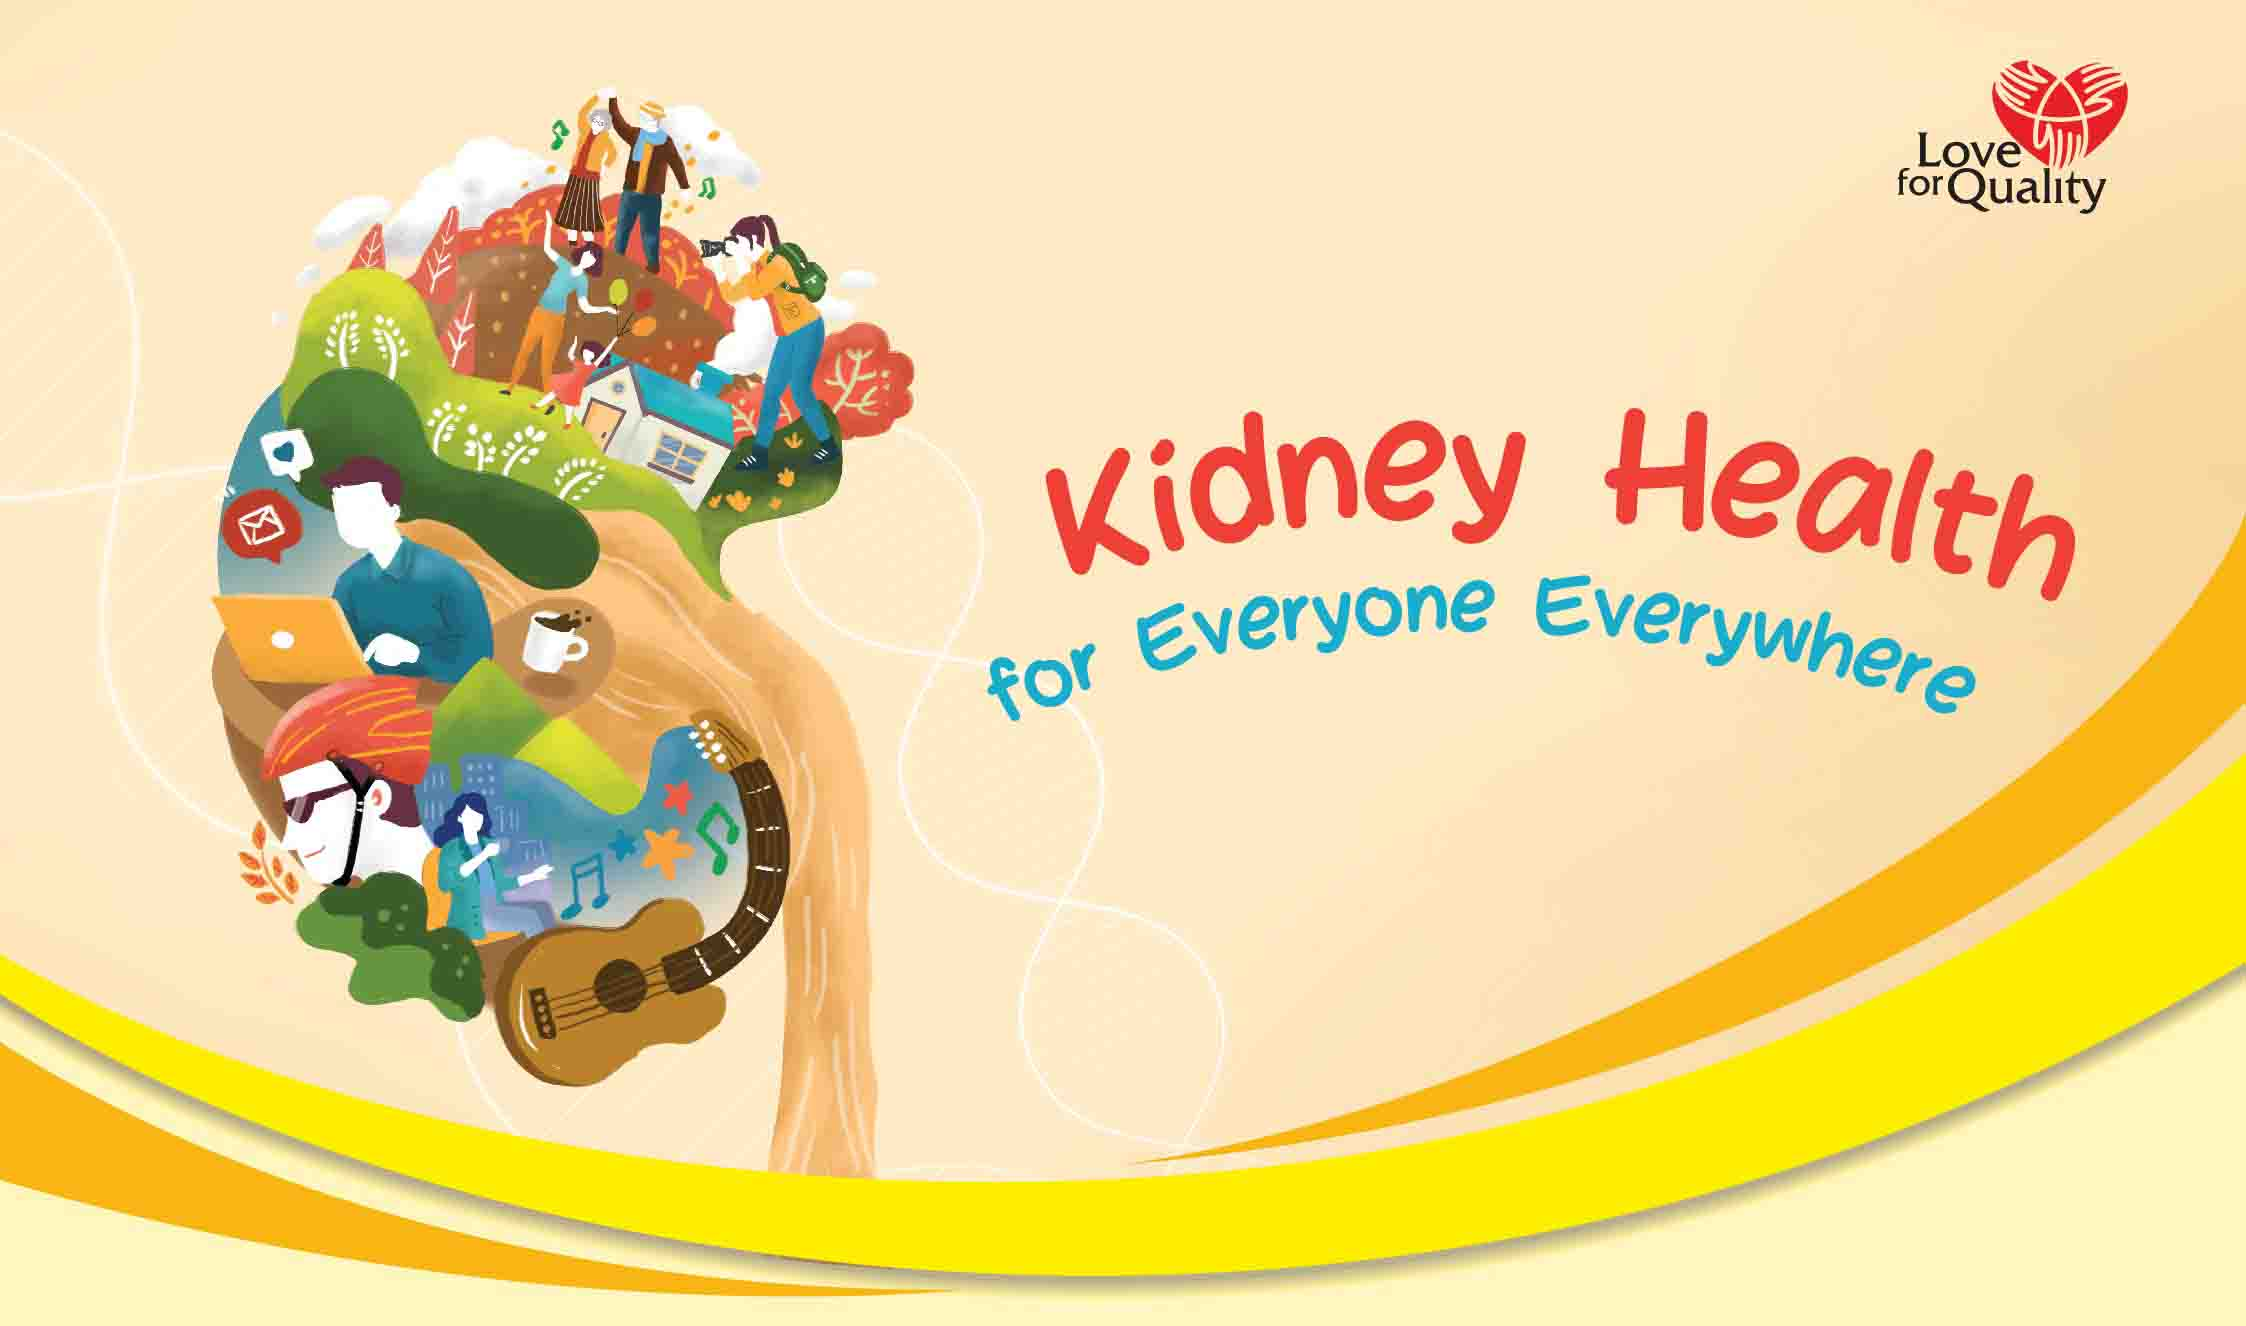 From Prevention to Detection Kidney Disease